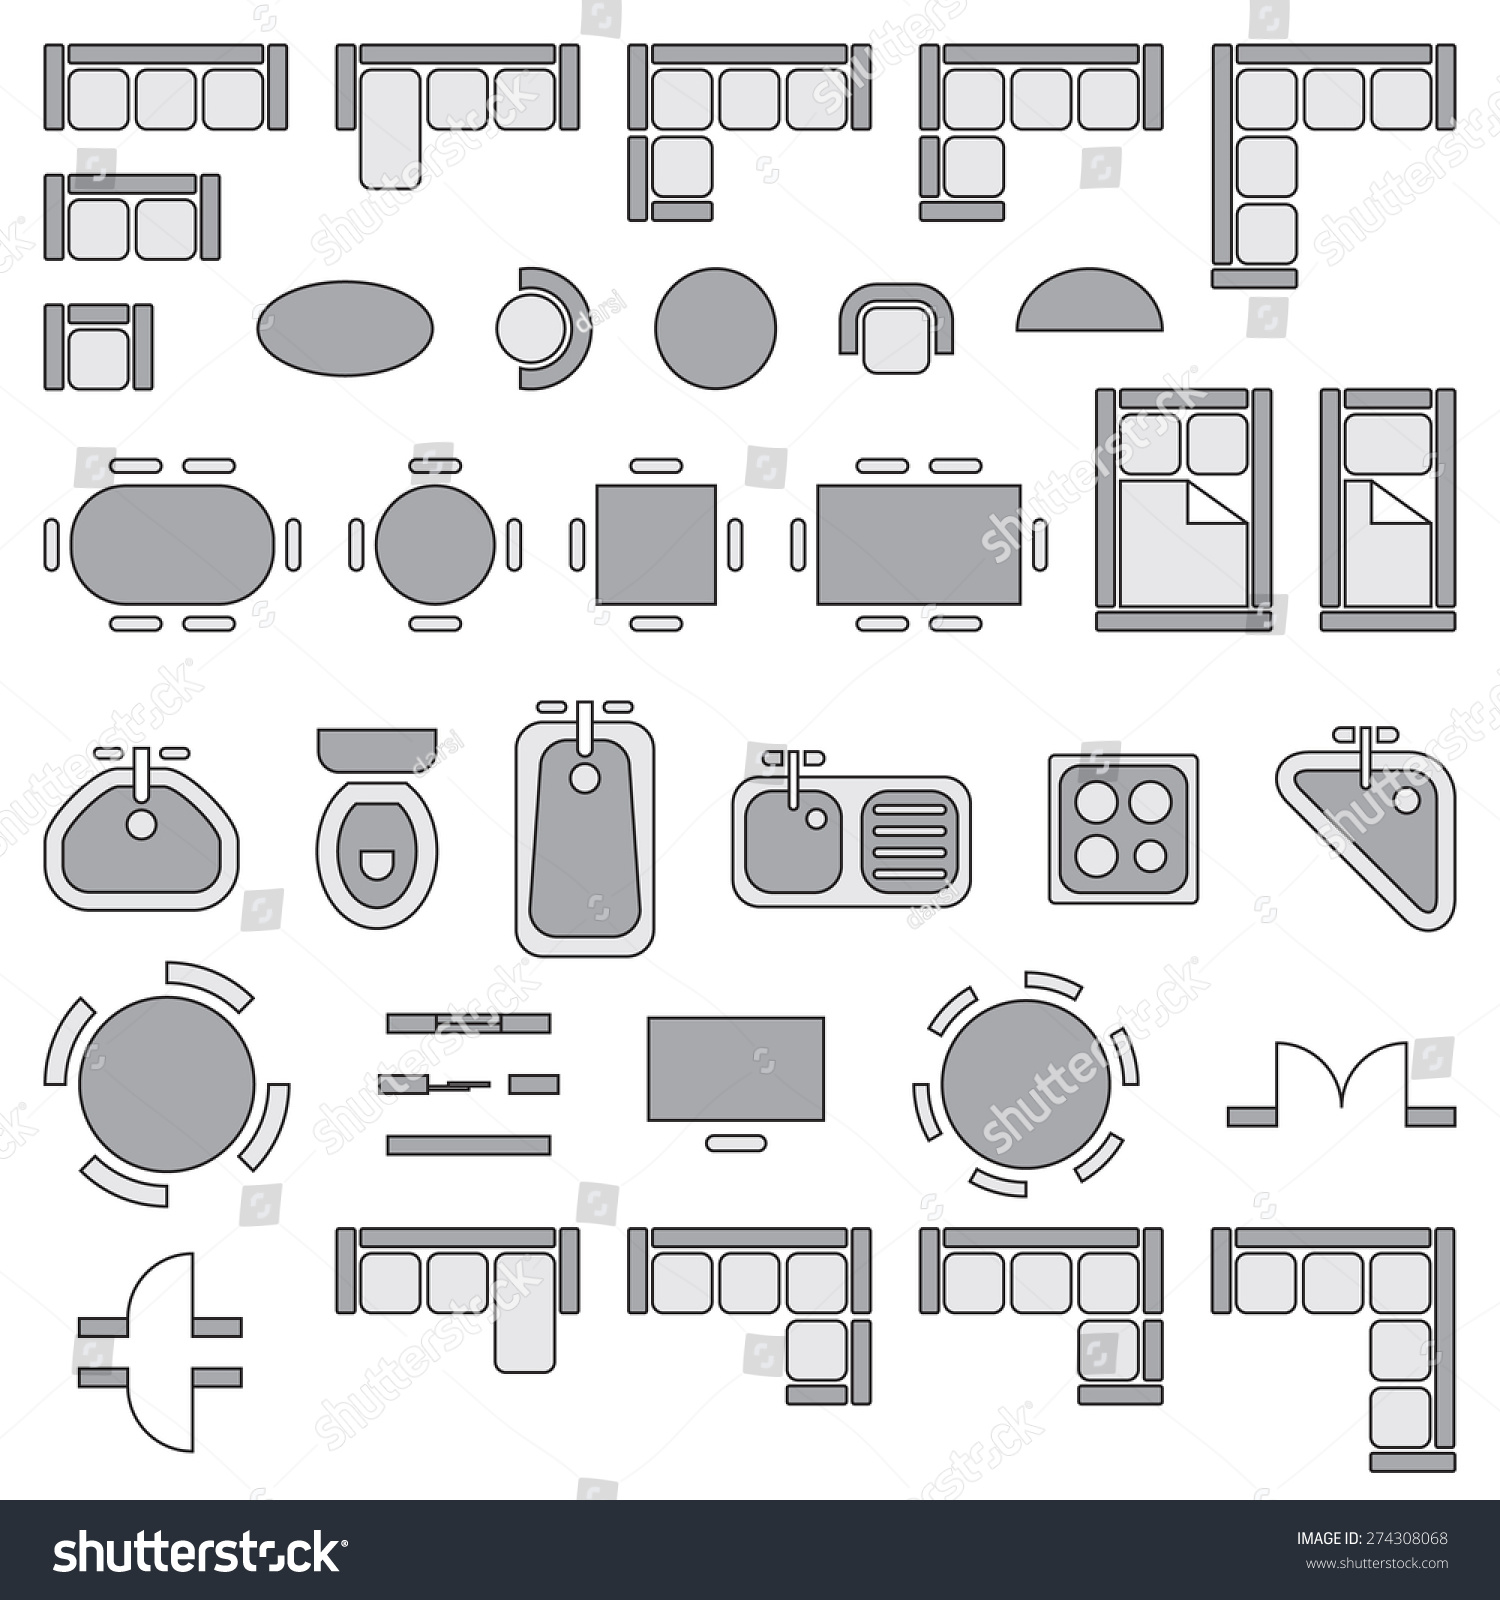 Standard furniture symbols used architecture plans stock for Web design blueprints